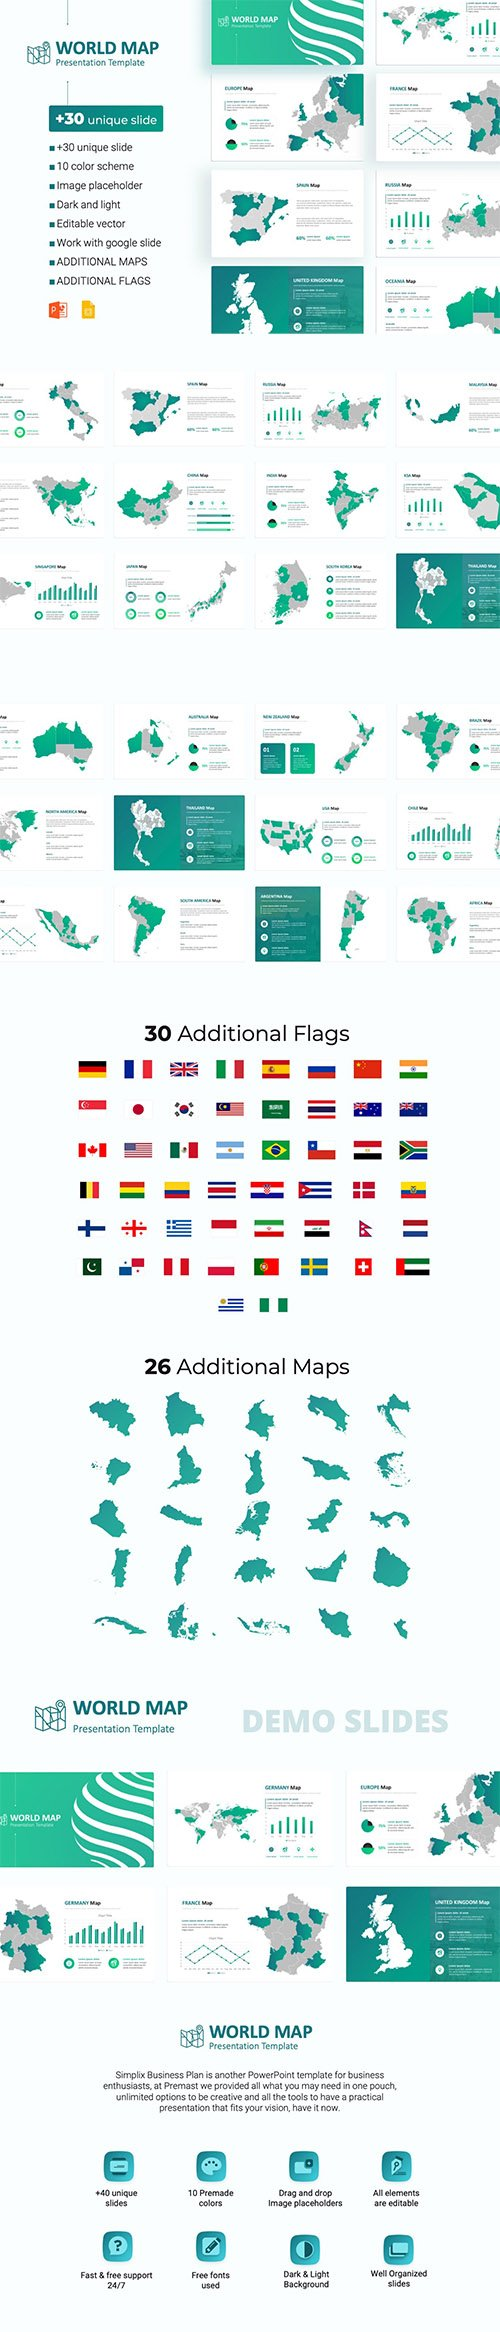 World Maps powerpoint Template